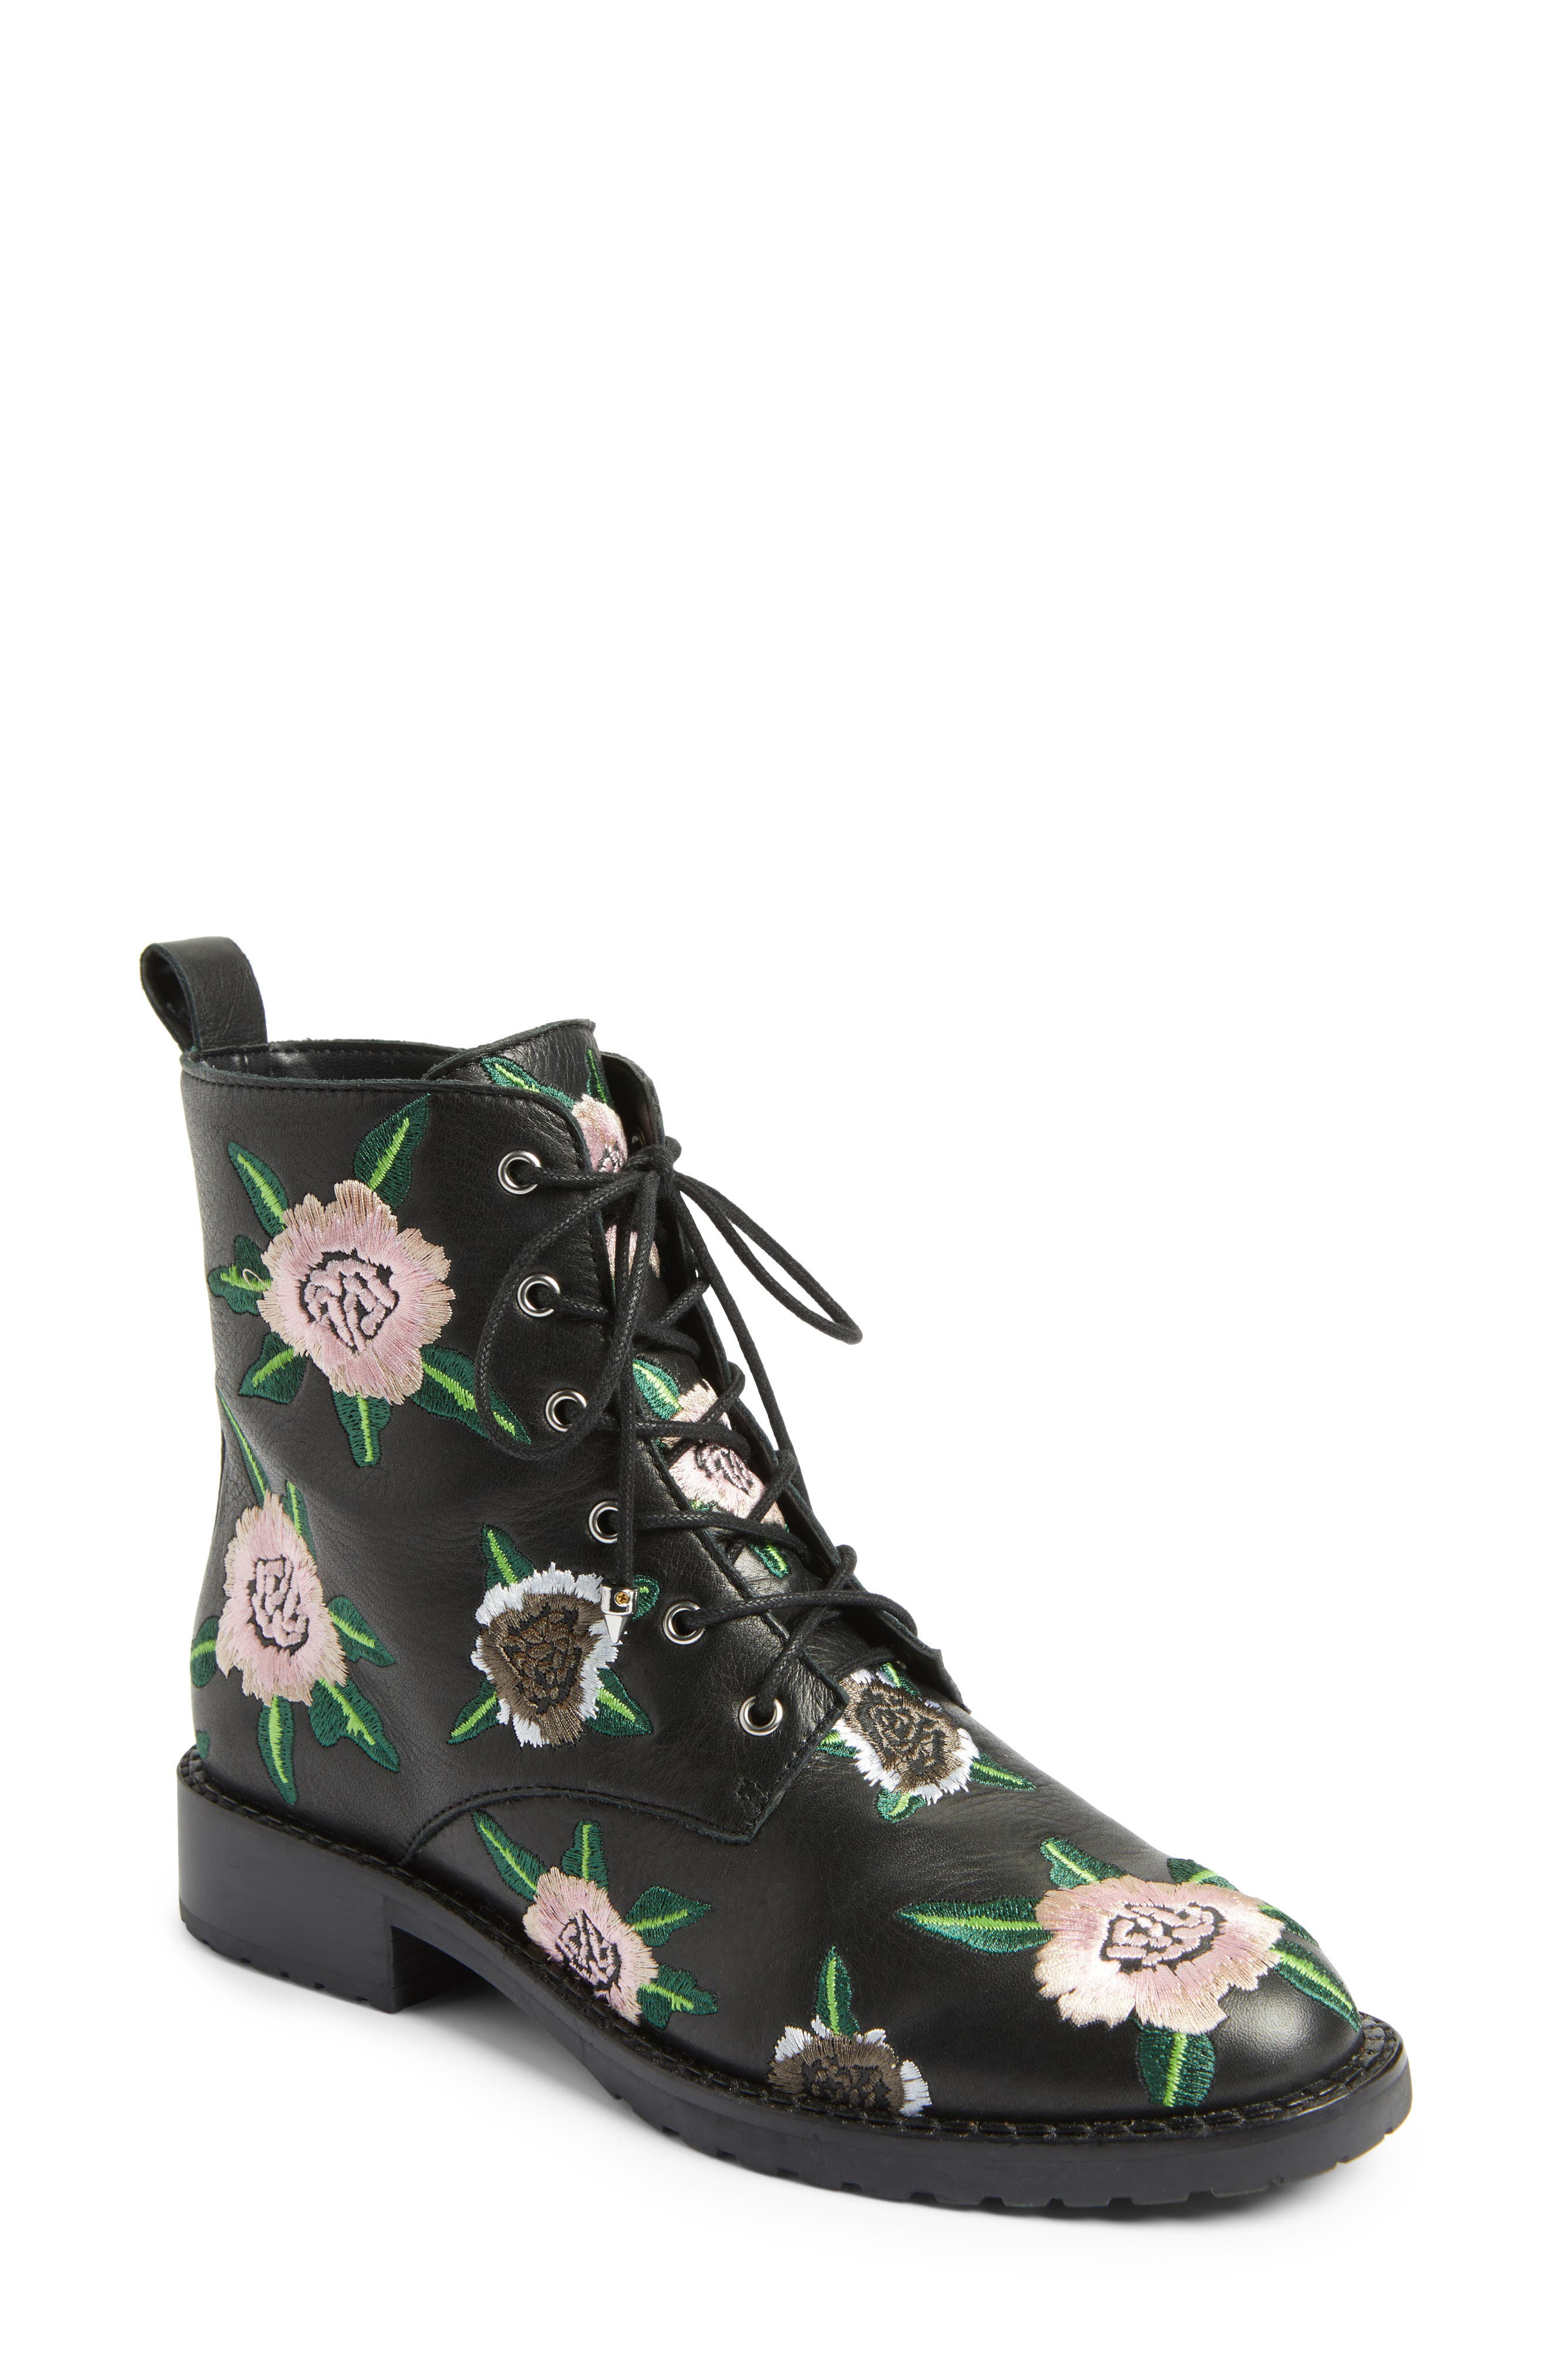 Main Image - Rebecca Minkoff Gerry Embroidered Lace-Up Boot (Women)